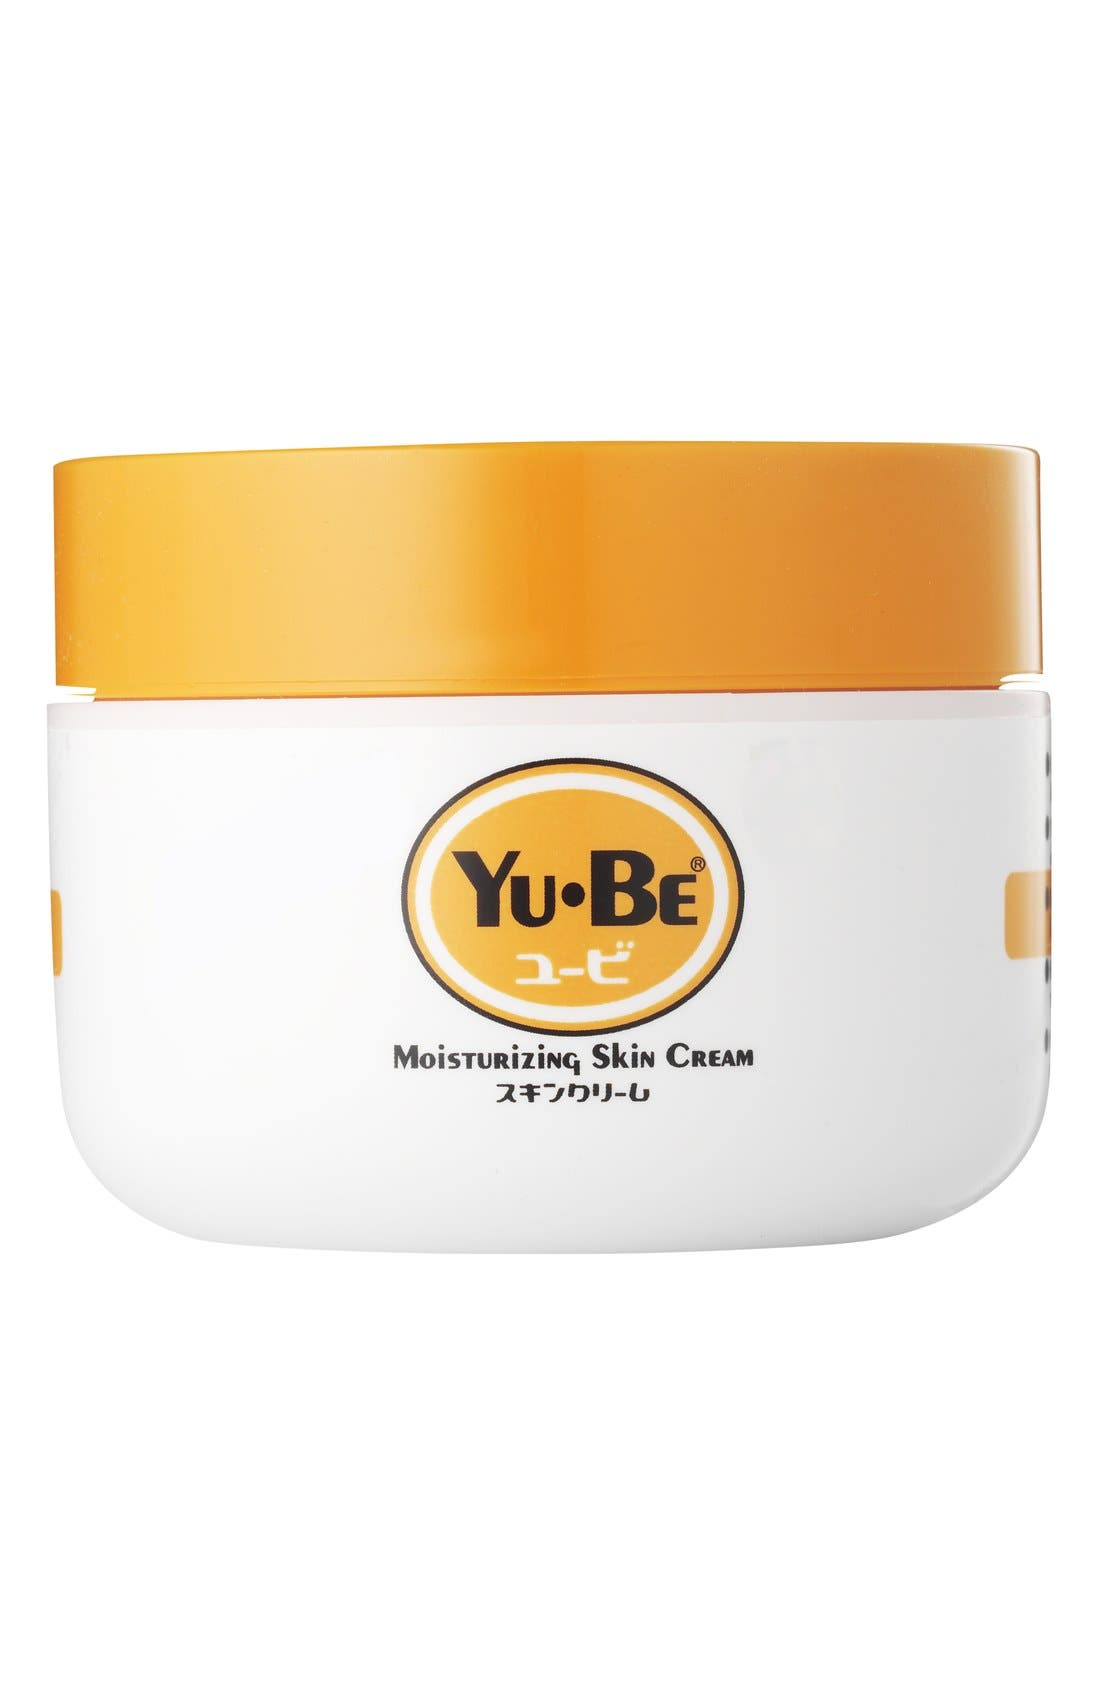 Yu-Be® Moisturizing Skin Cream Jar